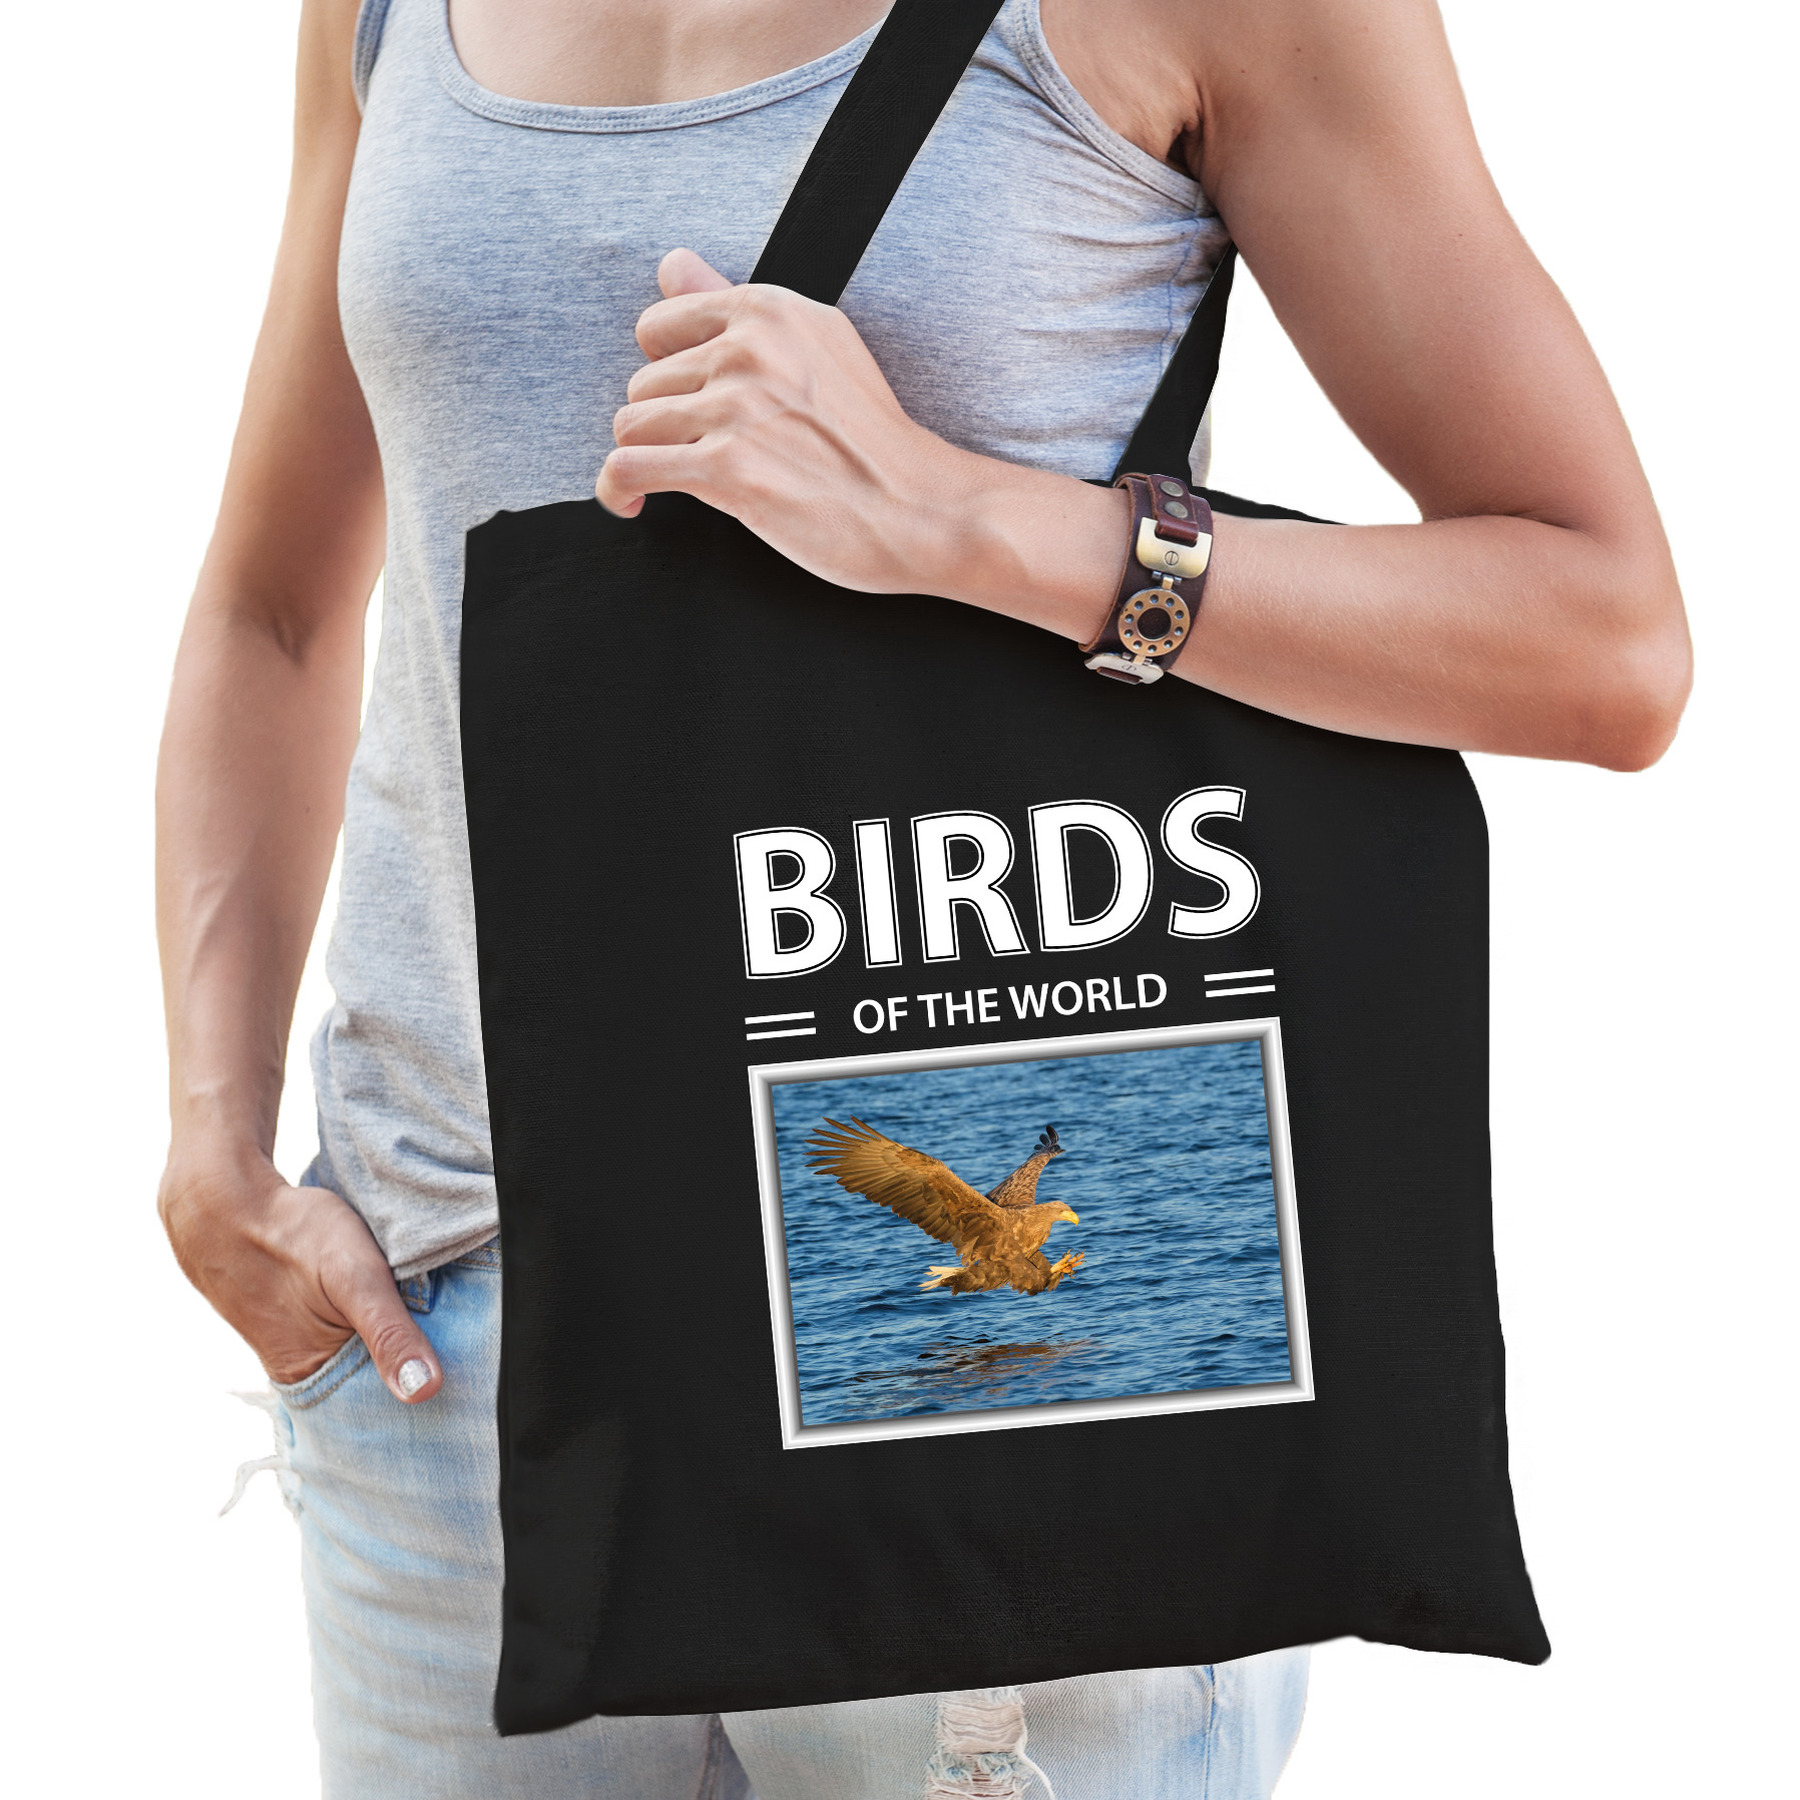 Katoenen tasje Zeearenden roofvogel zwart - birds of the world Zeearend cadeau tas